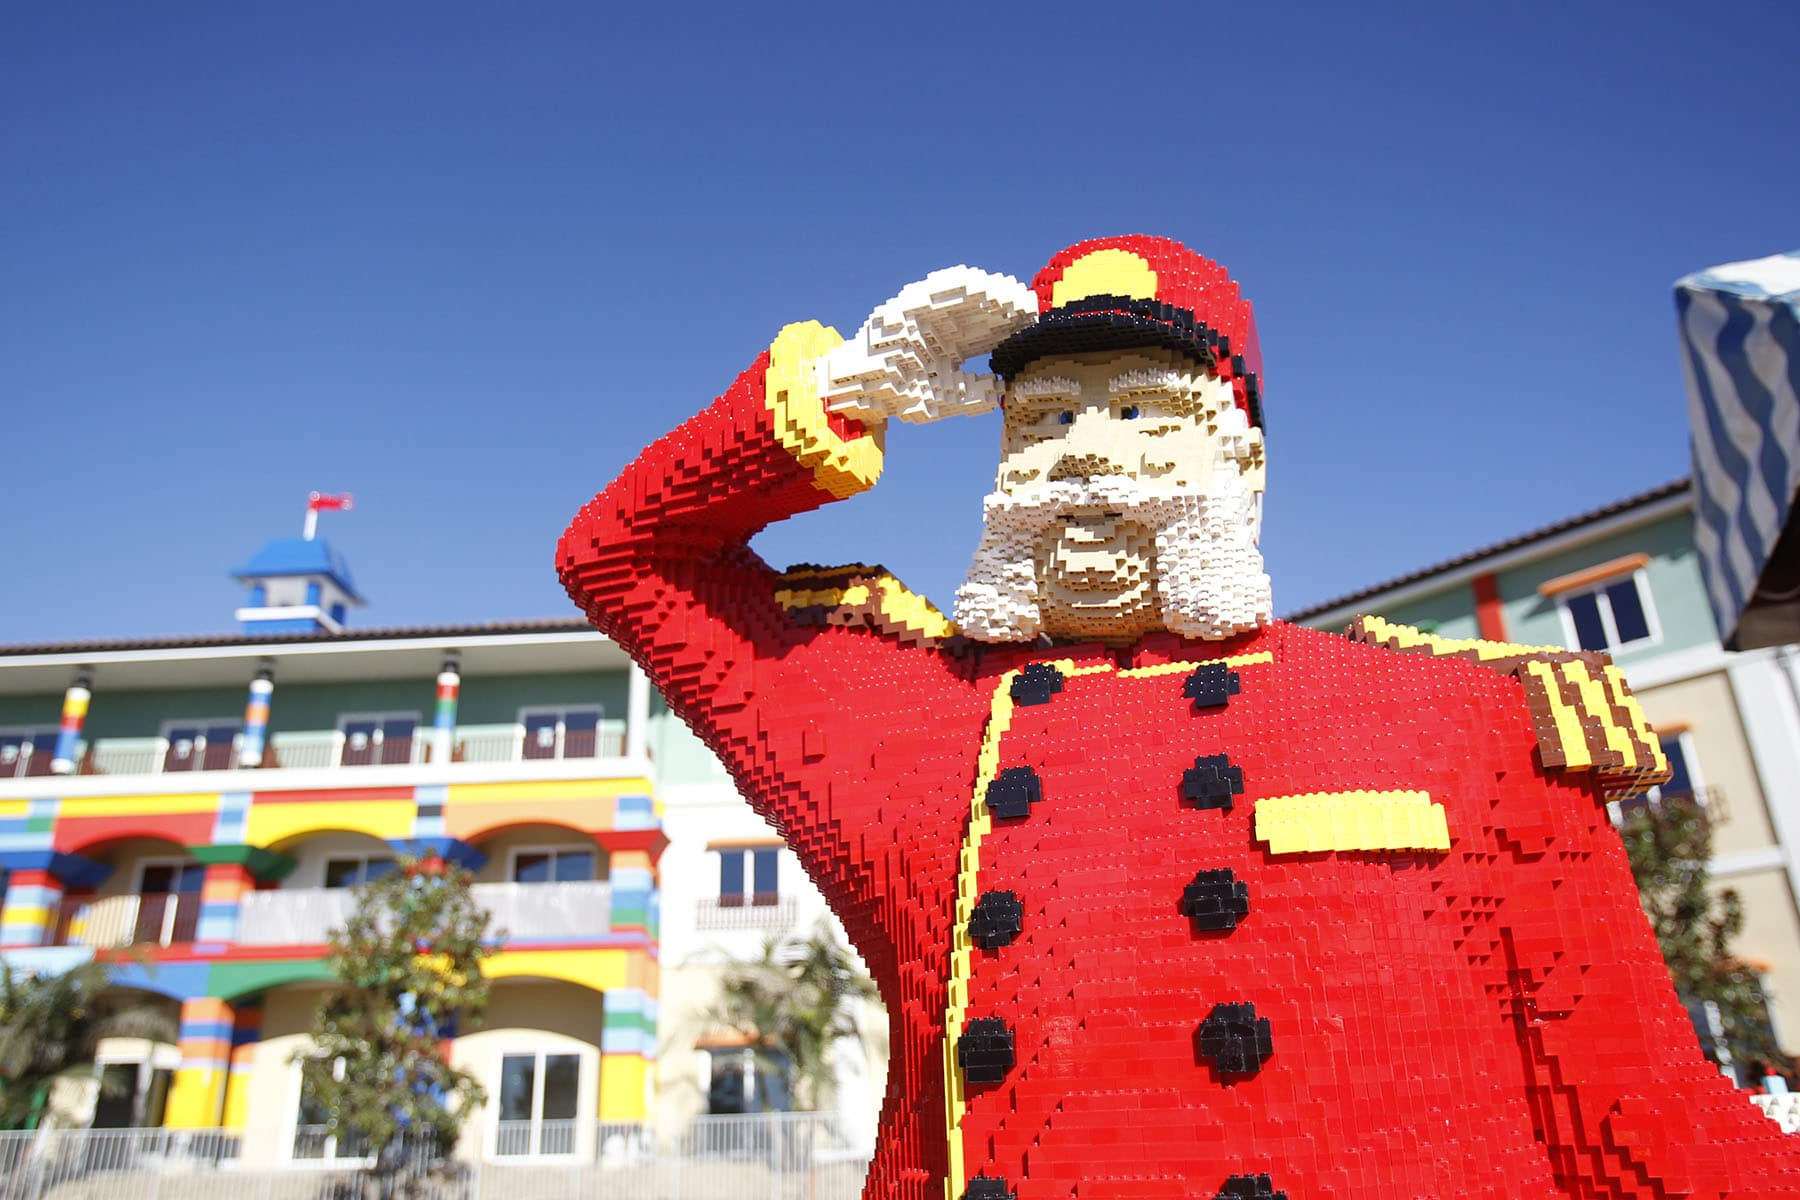 A LEGO bellman stands in front of the LEGOLAND Hotel in California